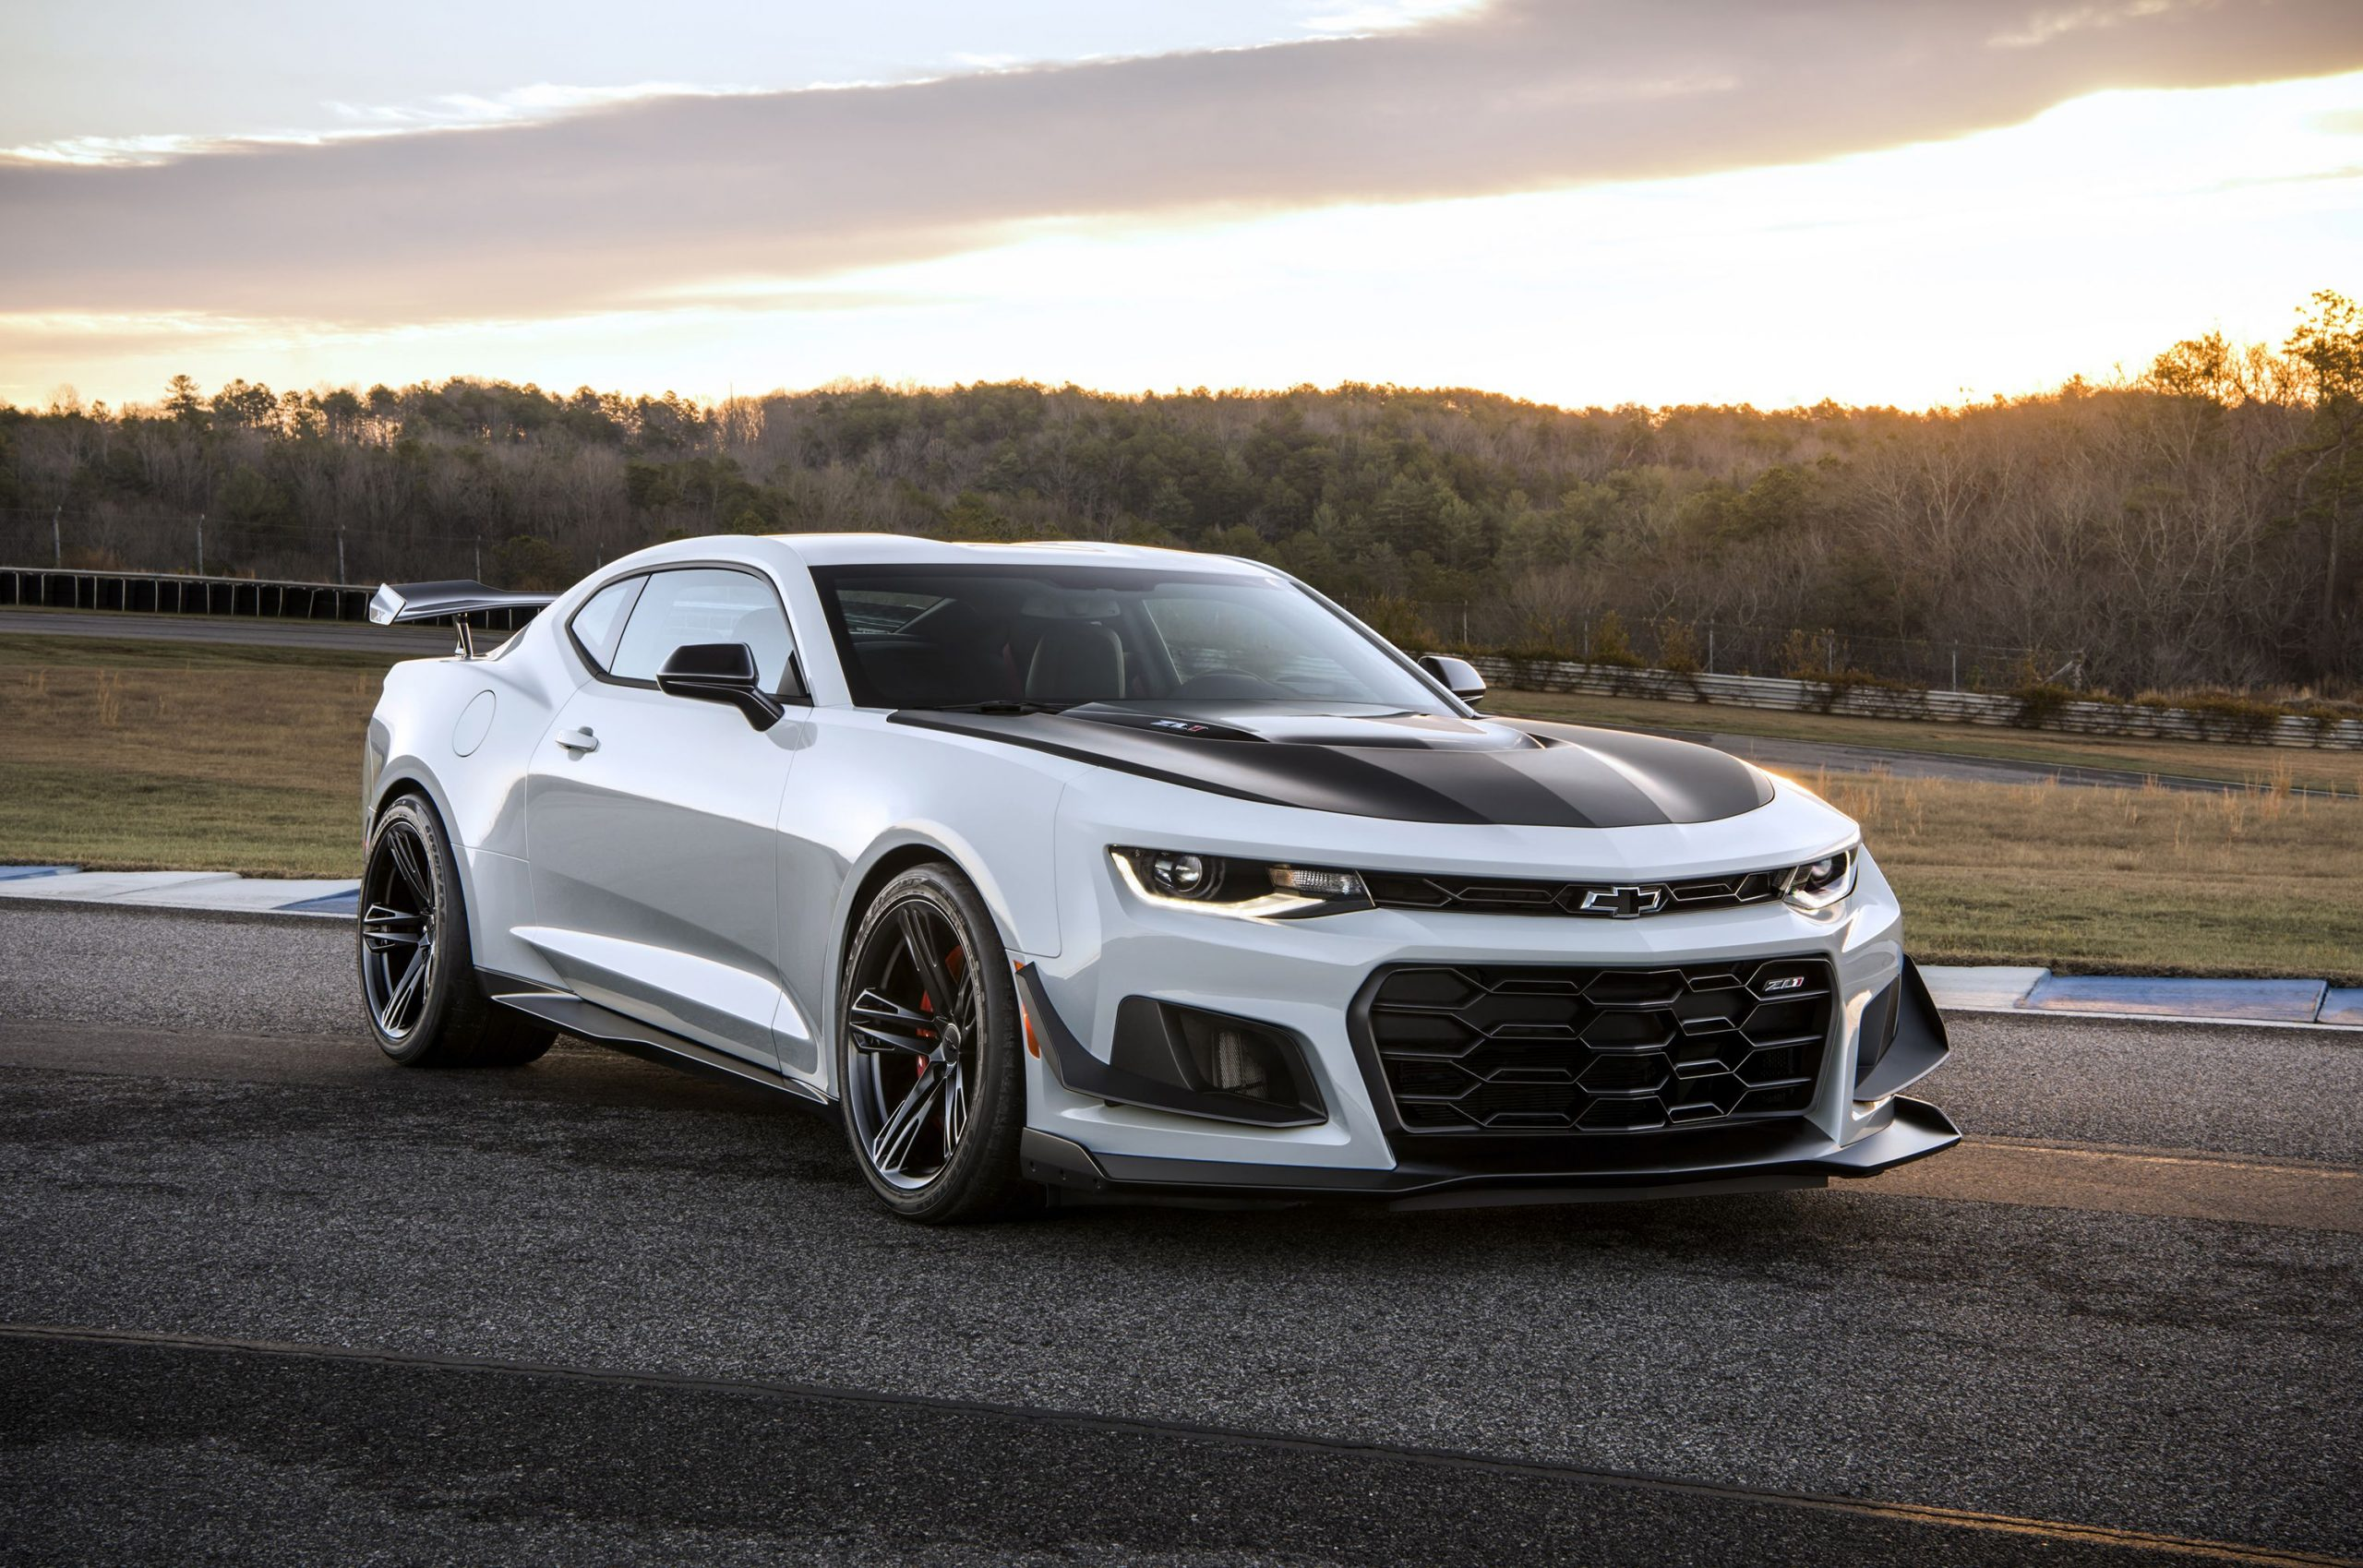 2019 Chevrolet Camaro Zl1 Review, Pricing, And Specs 2022 Chevy Camaro Review, Rims, Recalls